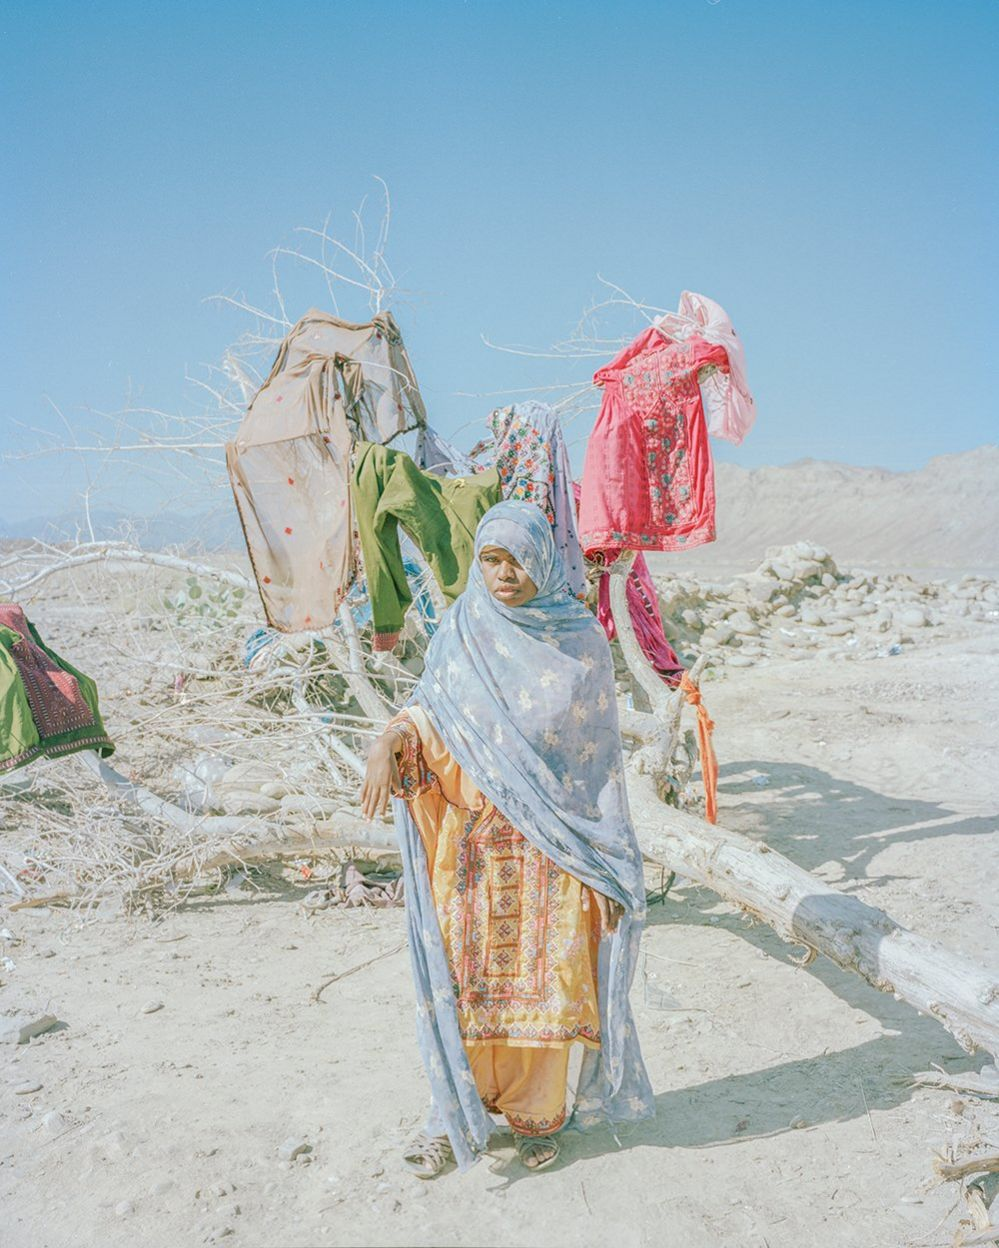 Young girl drying clothes on dead tree